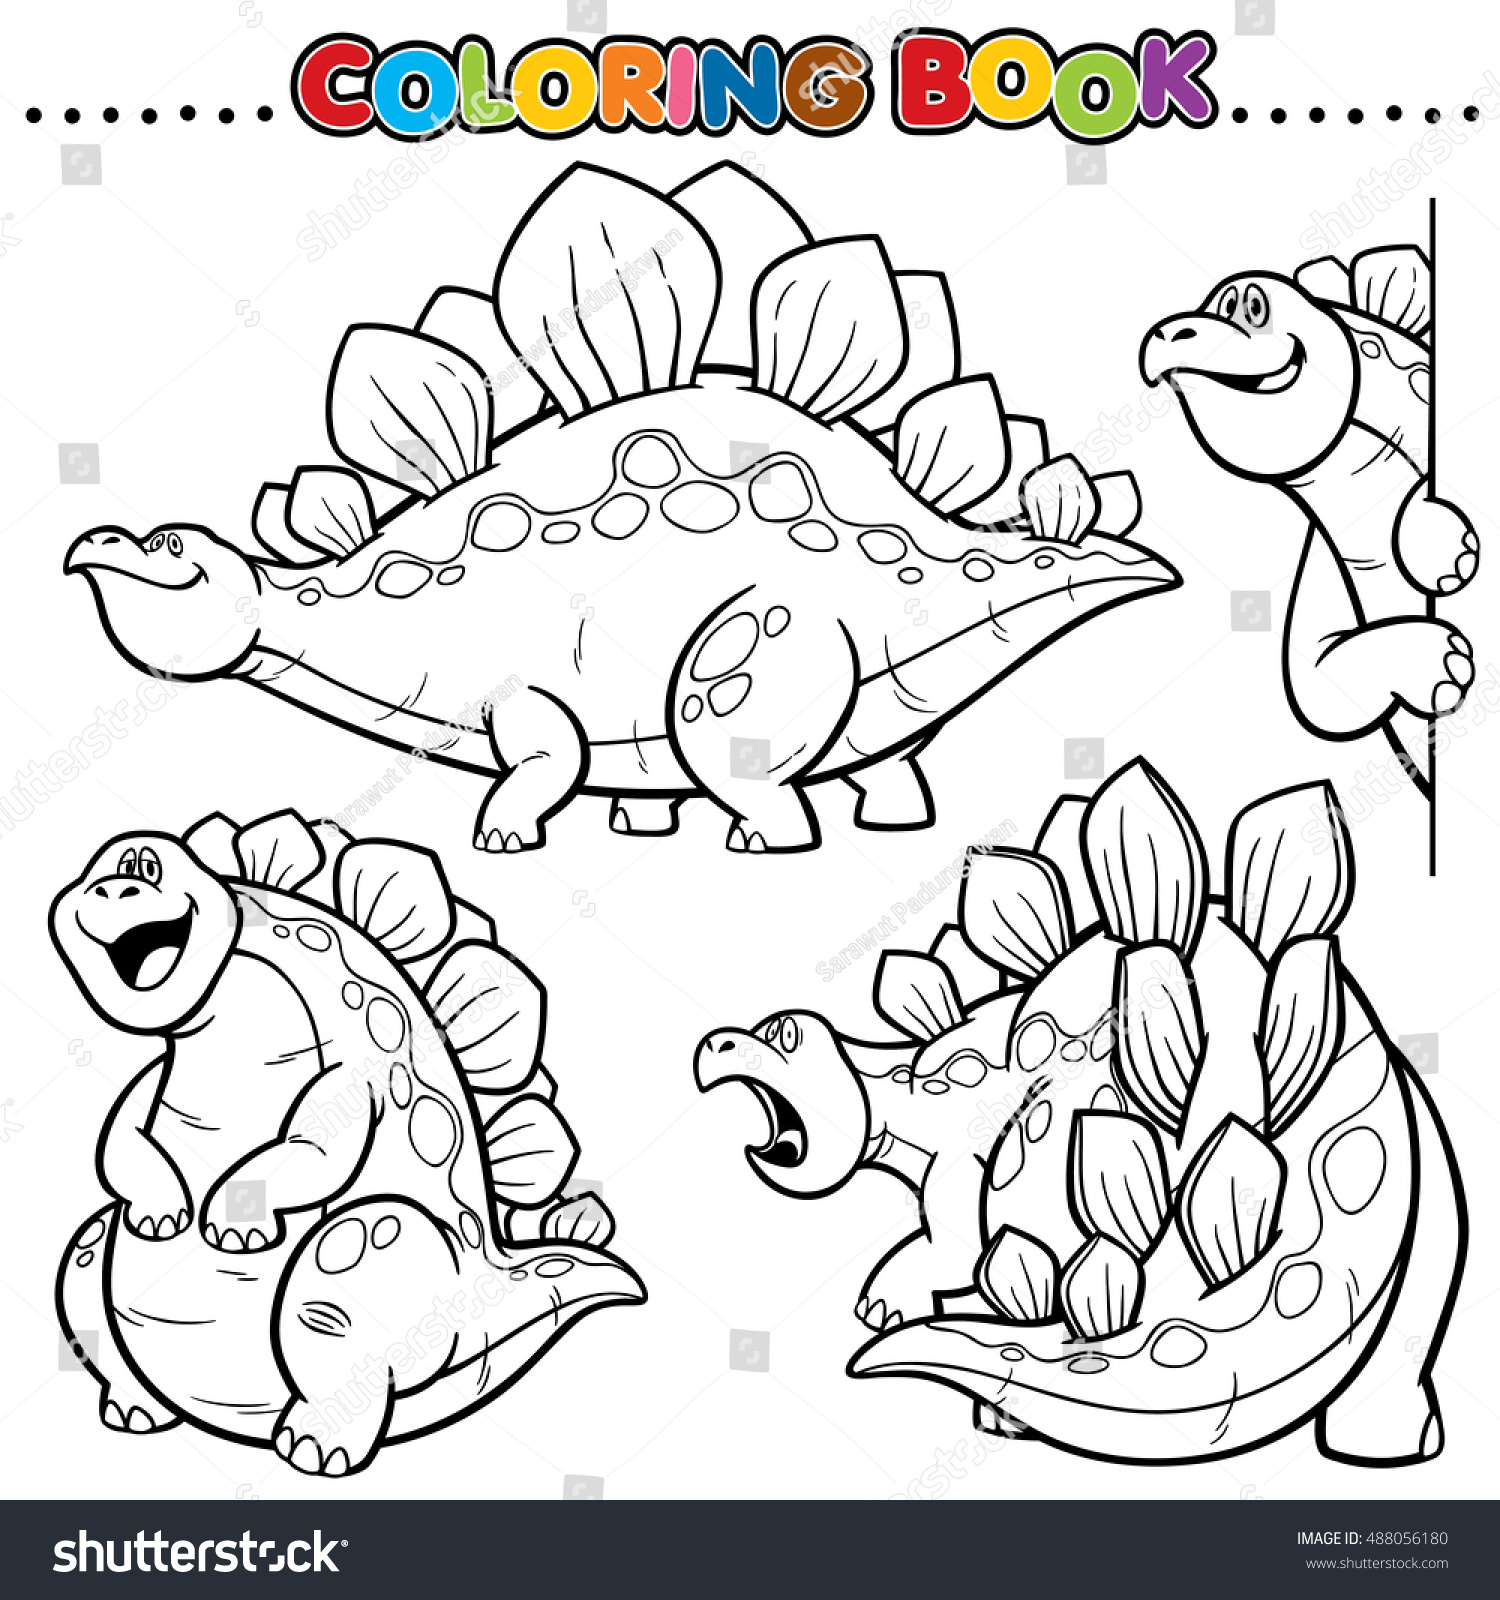 Cartoon Coloring Book Dinosaurs Character Stock Vector 488056180